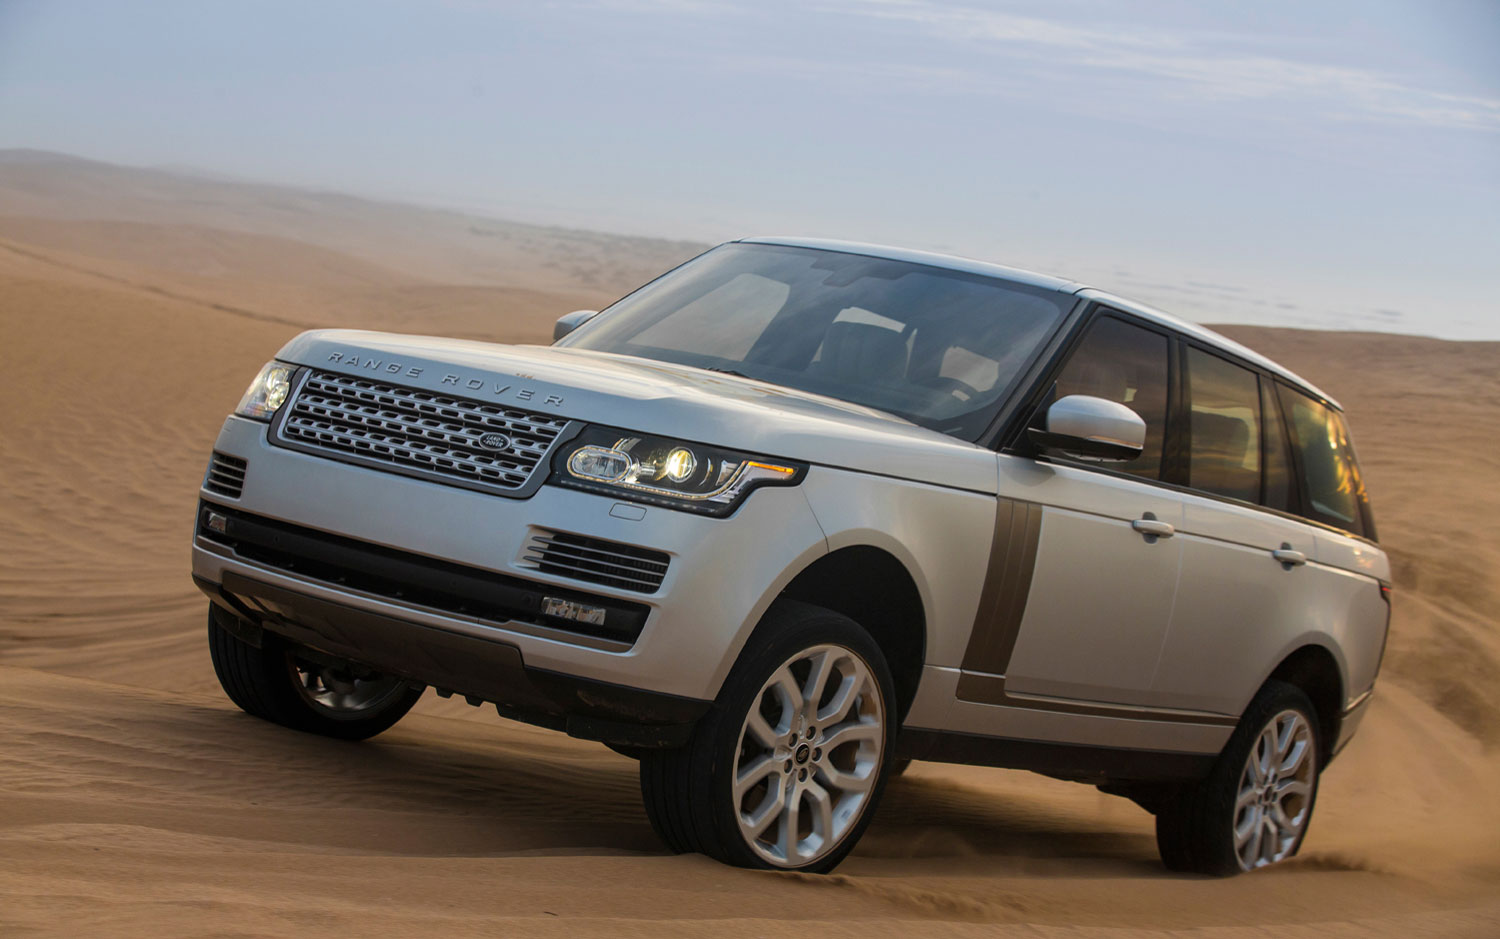 2013 land rover range rover cars model 2013 2014. Black Bedroom Furniture Sets. Home Design Ideas